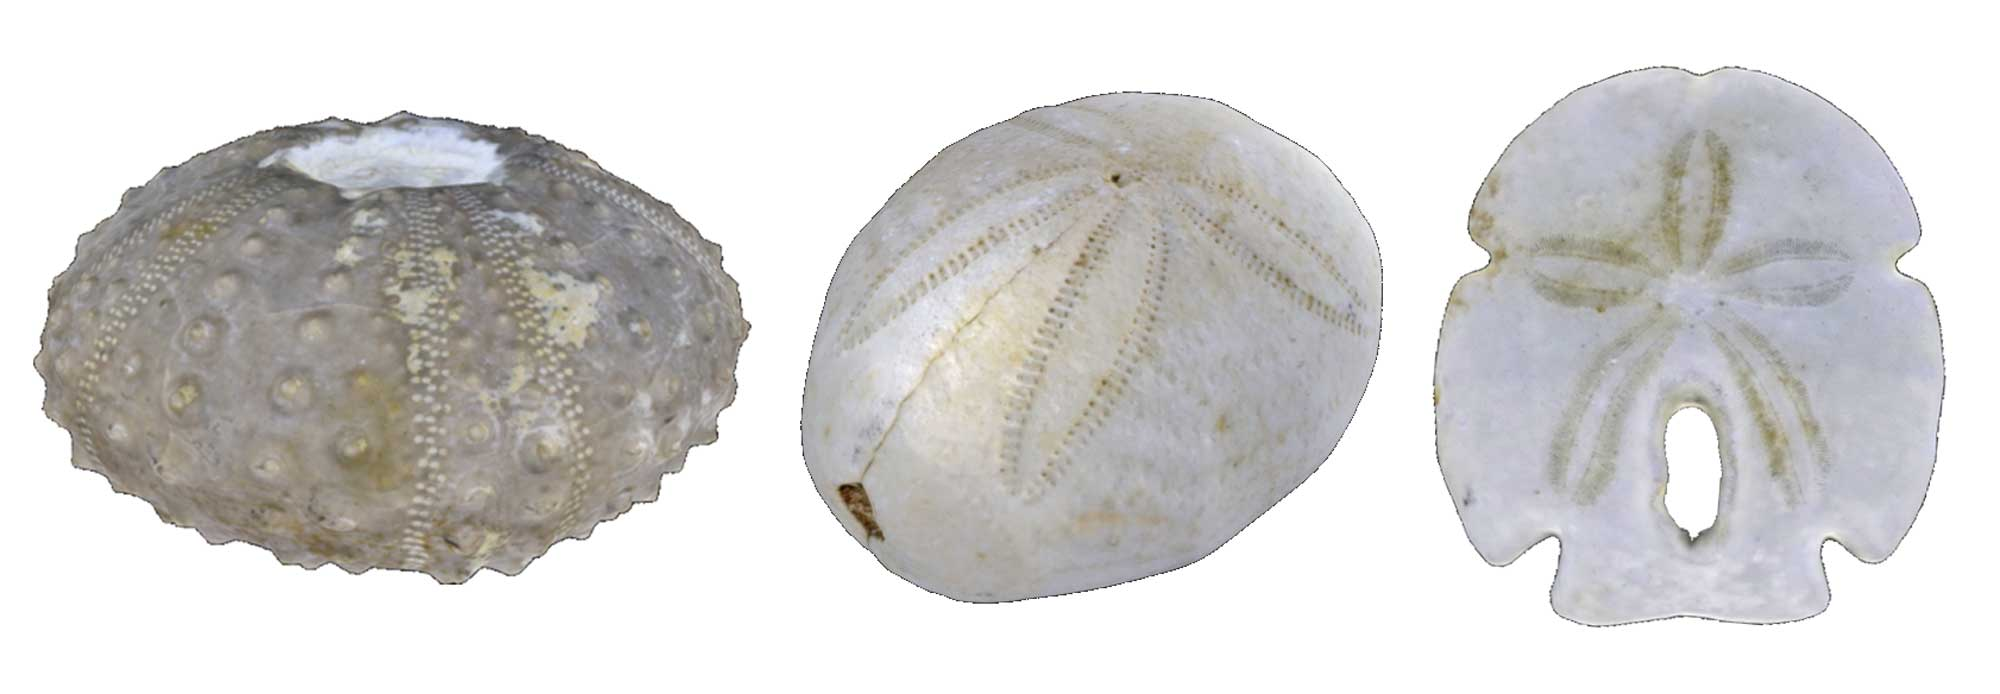 Images of echinoid fossils.